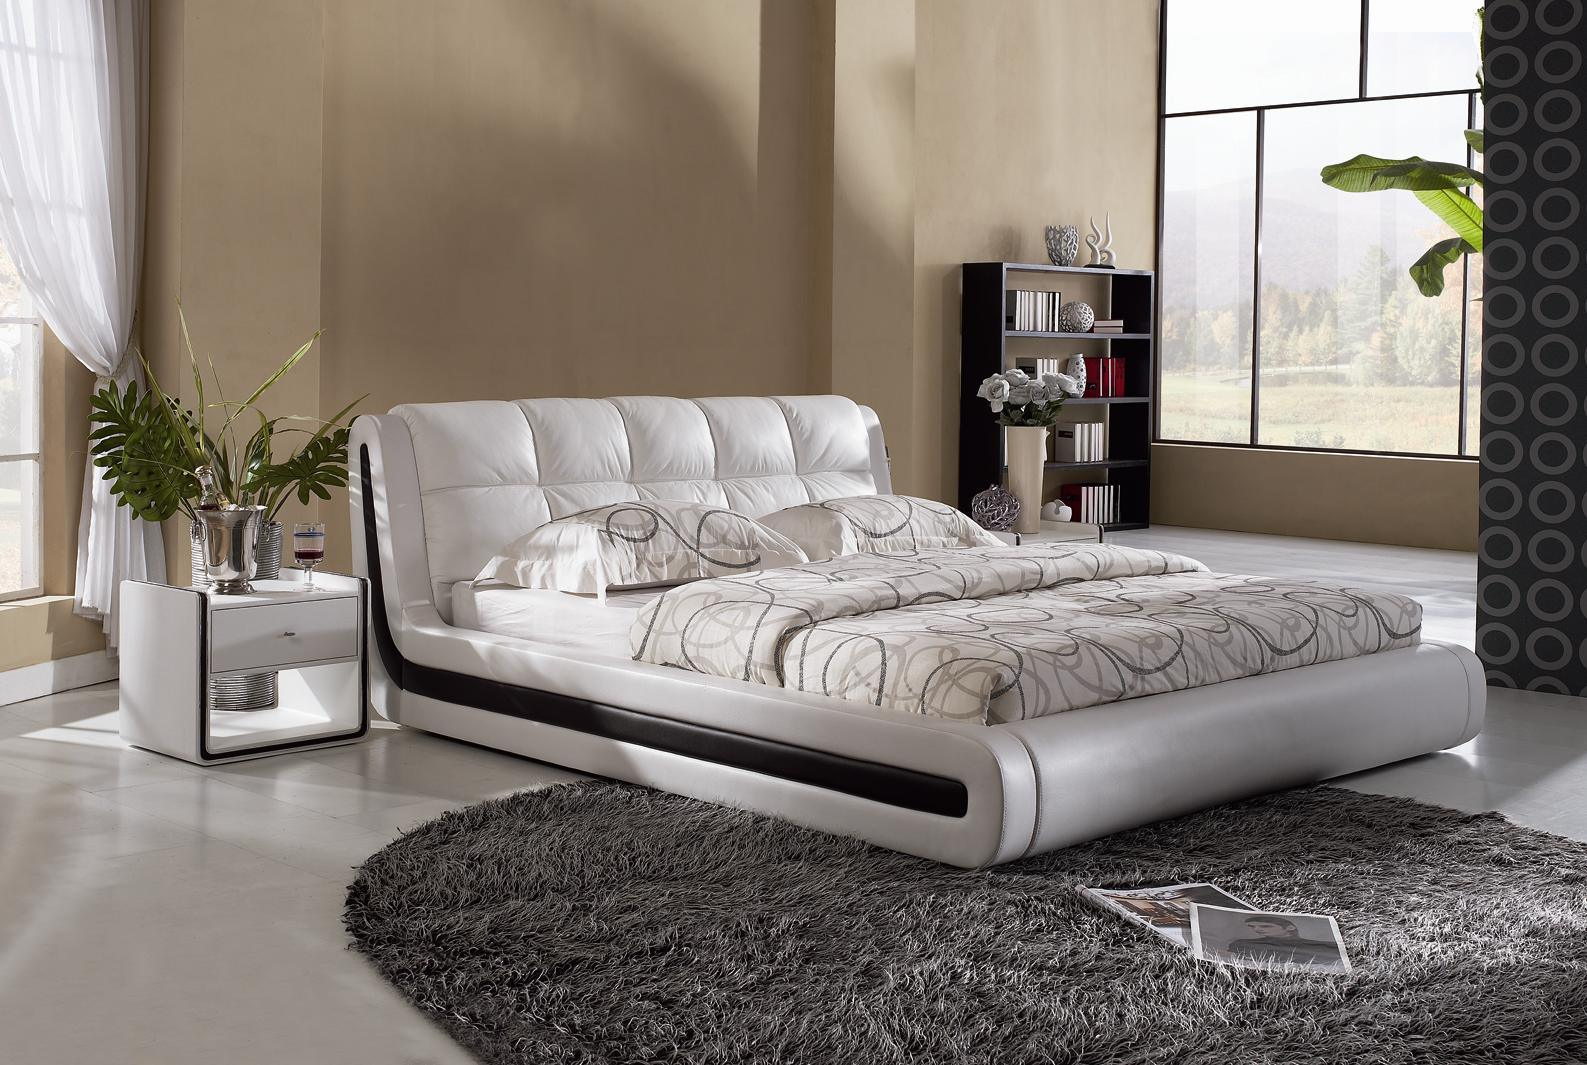 Modern beds design pictures simple home decoration for New style bedroom bed design